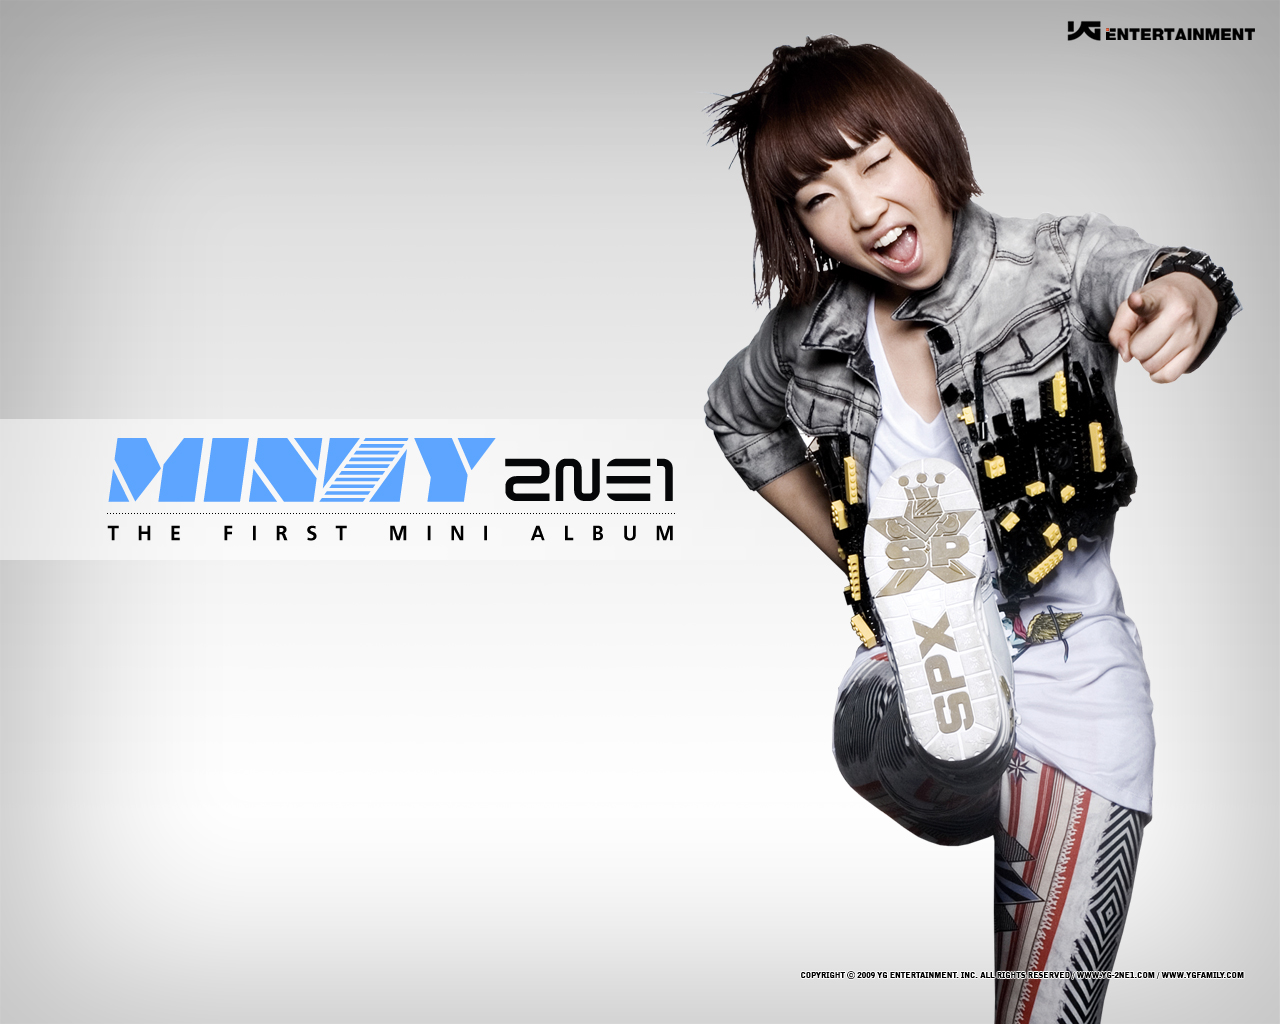 Cute Girl Korean Wallpaper 2ne1 Hd Wallpapers Most Beautiful Places In The World